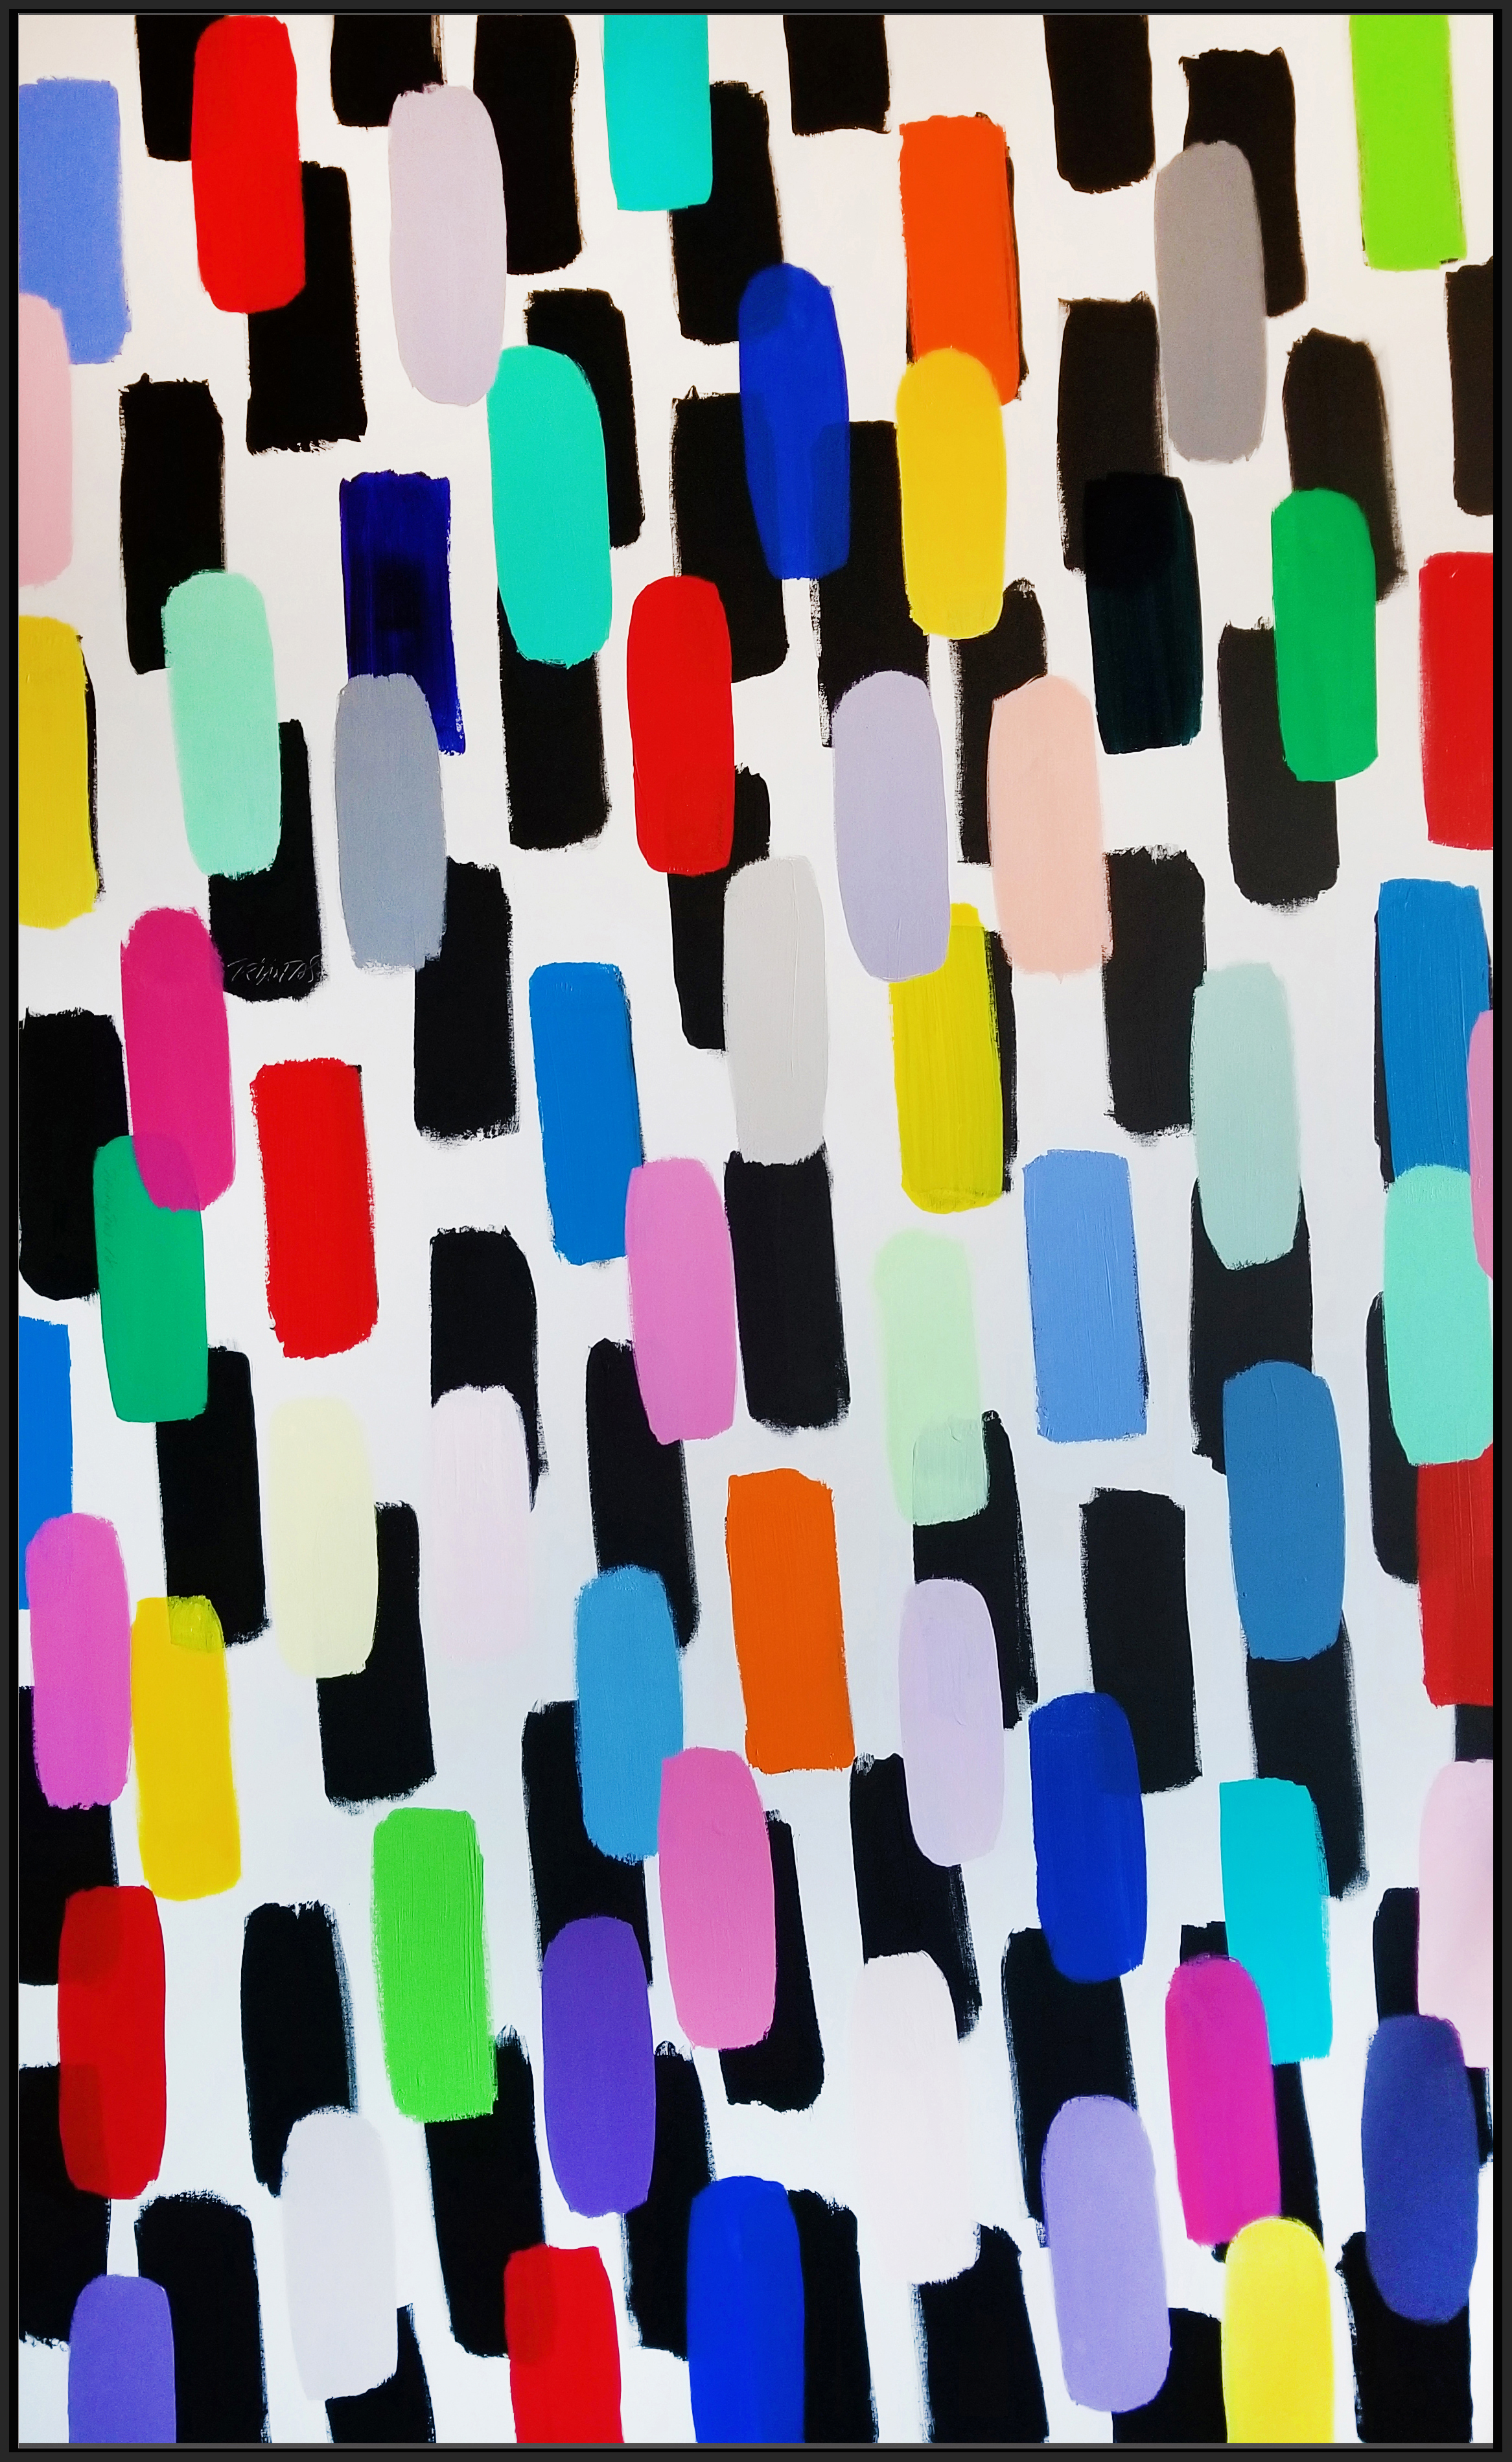 "Jelly Bean #55, 2018, acrylic on canvas, 96"" x 60"" (152.4 x 243.8 cm) in New York, USA"